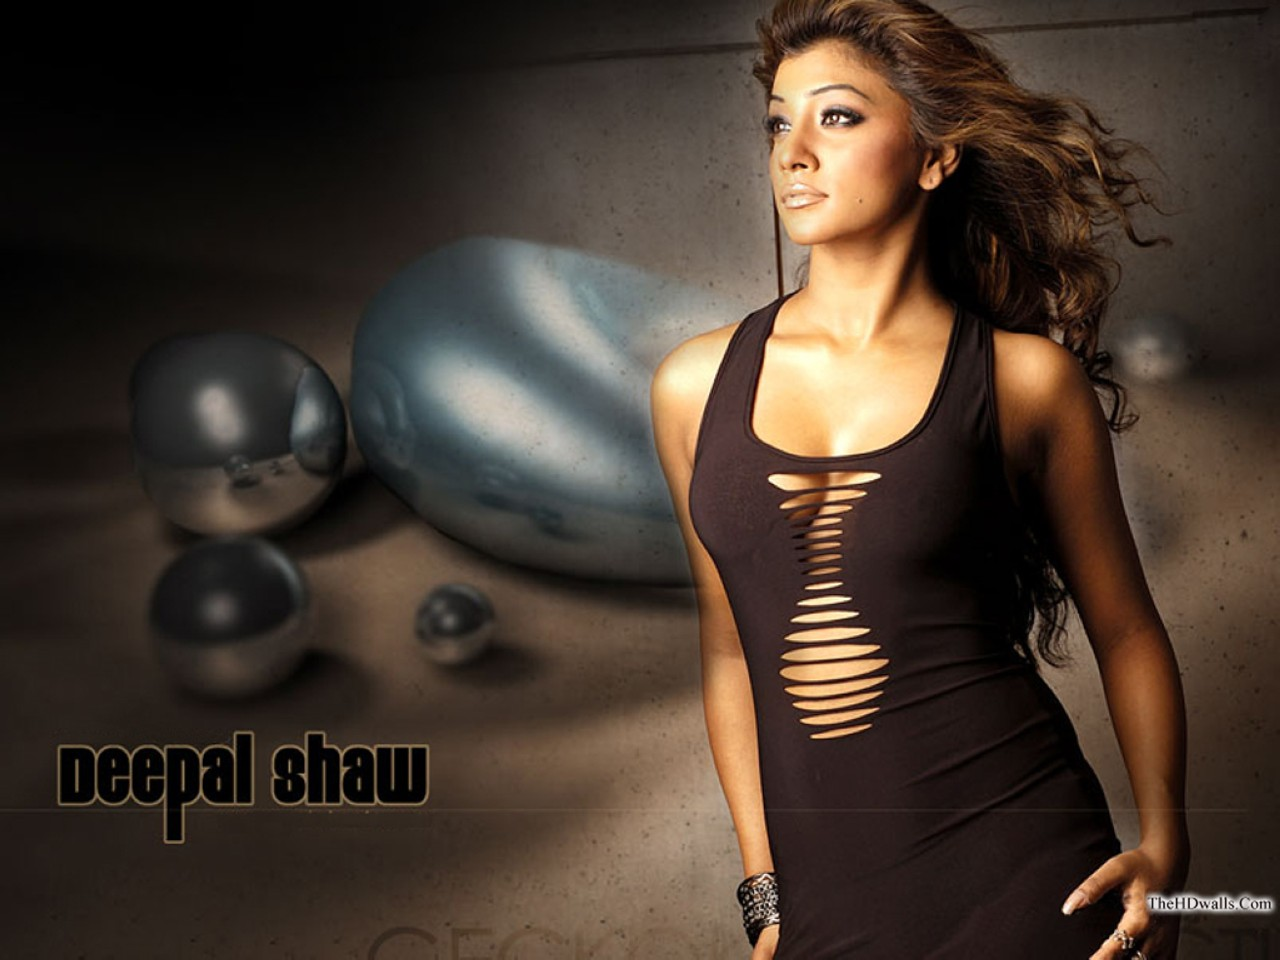 Bollywood Deepal Shaw wallpapers 5 imageS AbqSzFA9